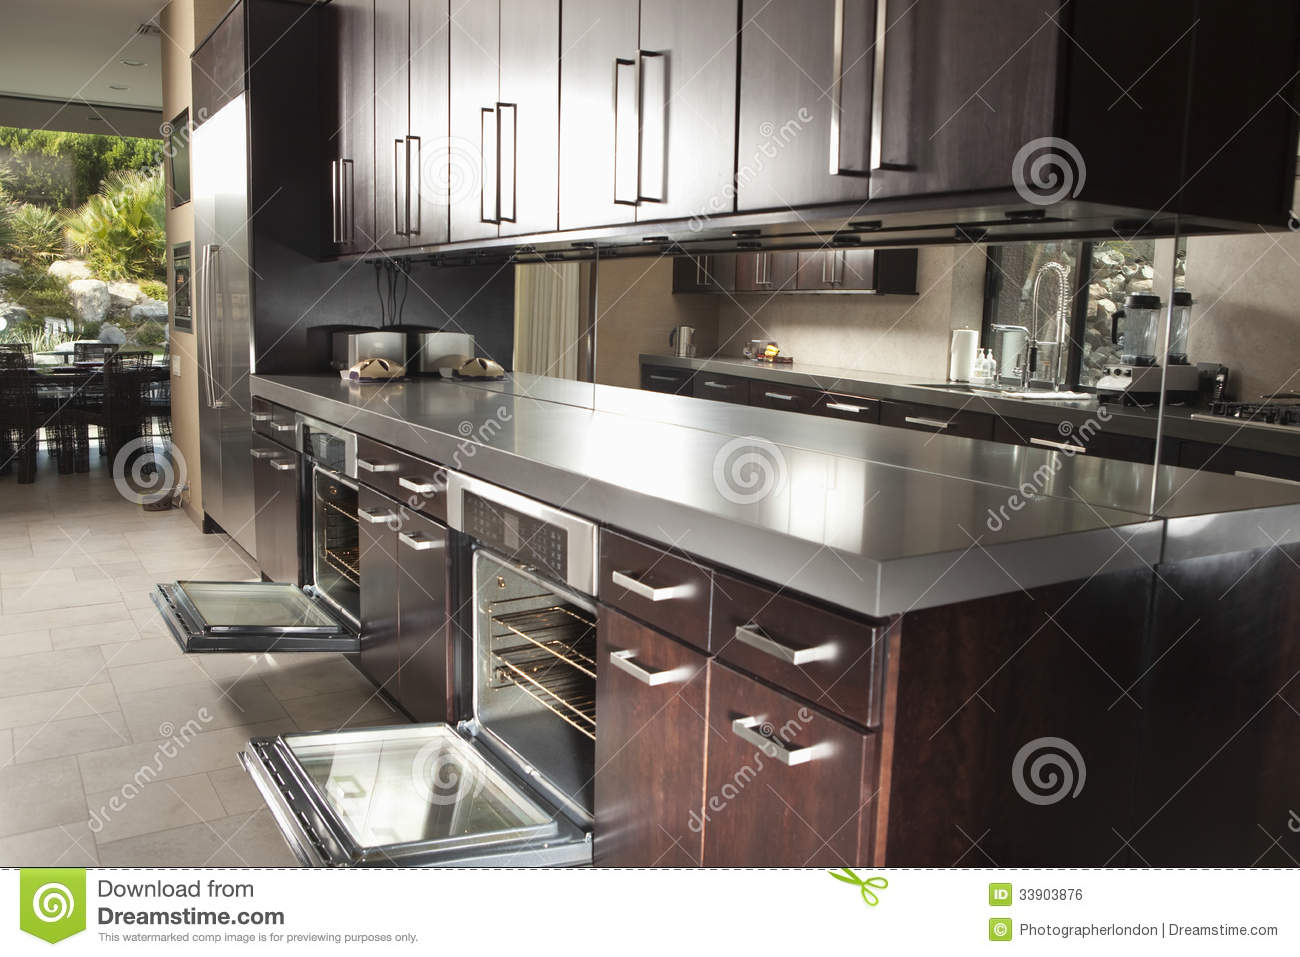 commercial kitchen with open oven and cabinets royalty free stock